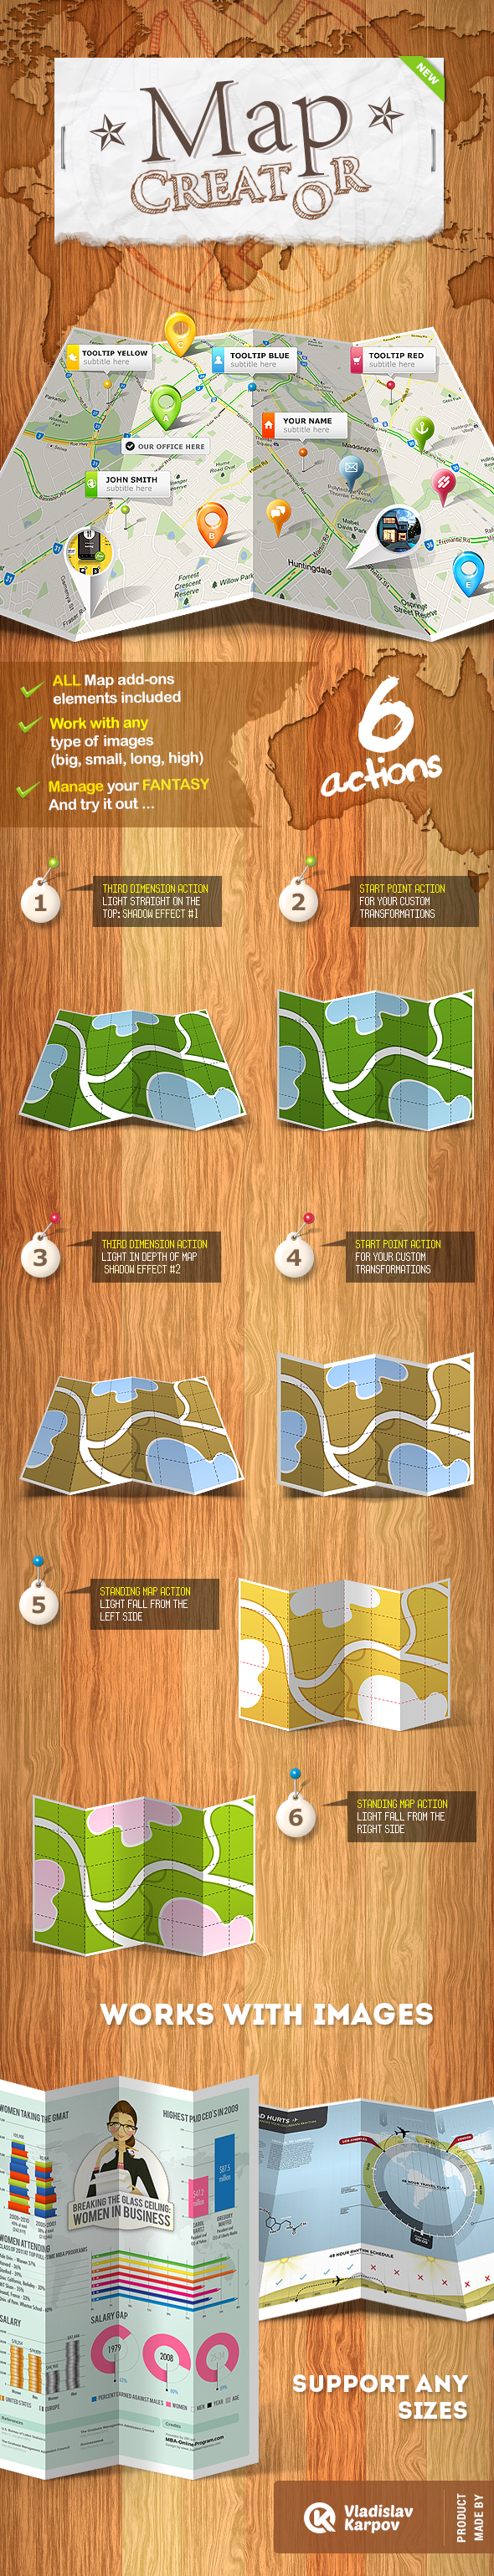 Graphicriver | Map Creator - Action Free Download free download Graphicriver | Map Creator - Action Free Download nulled Graphicriver | Map Creator - Action Free Download